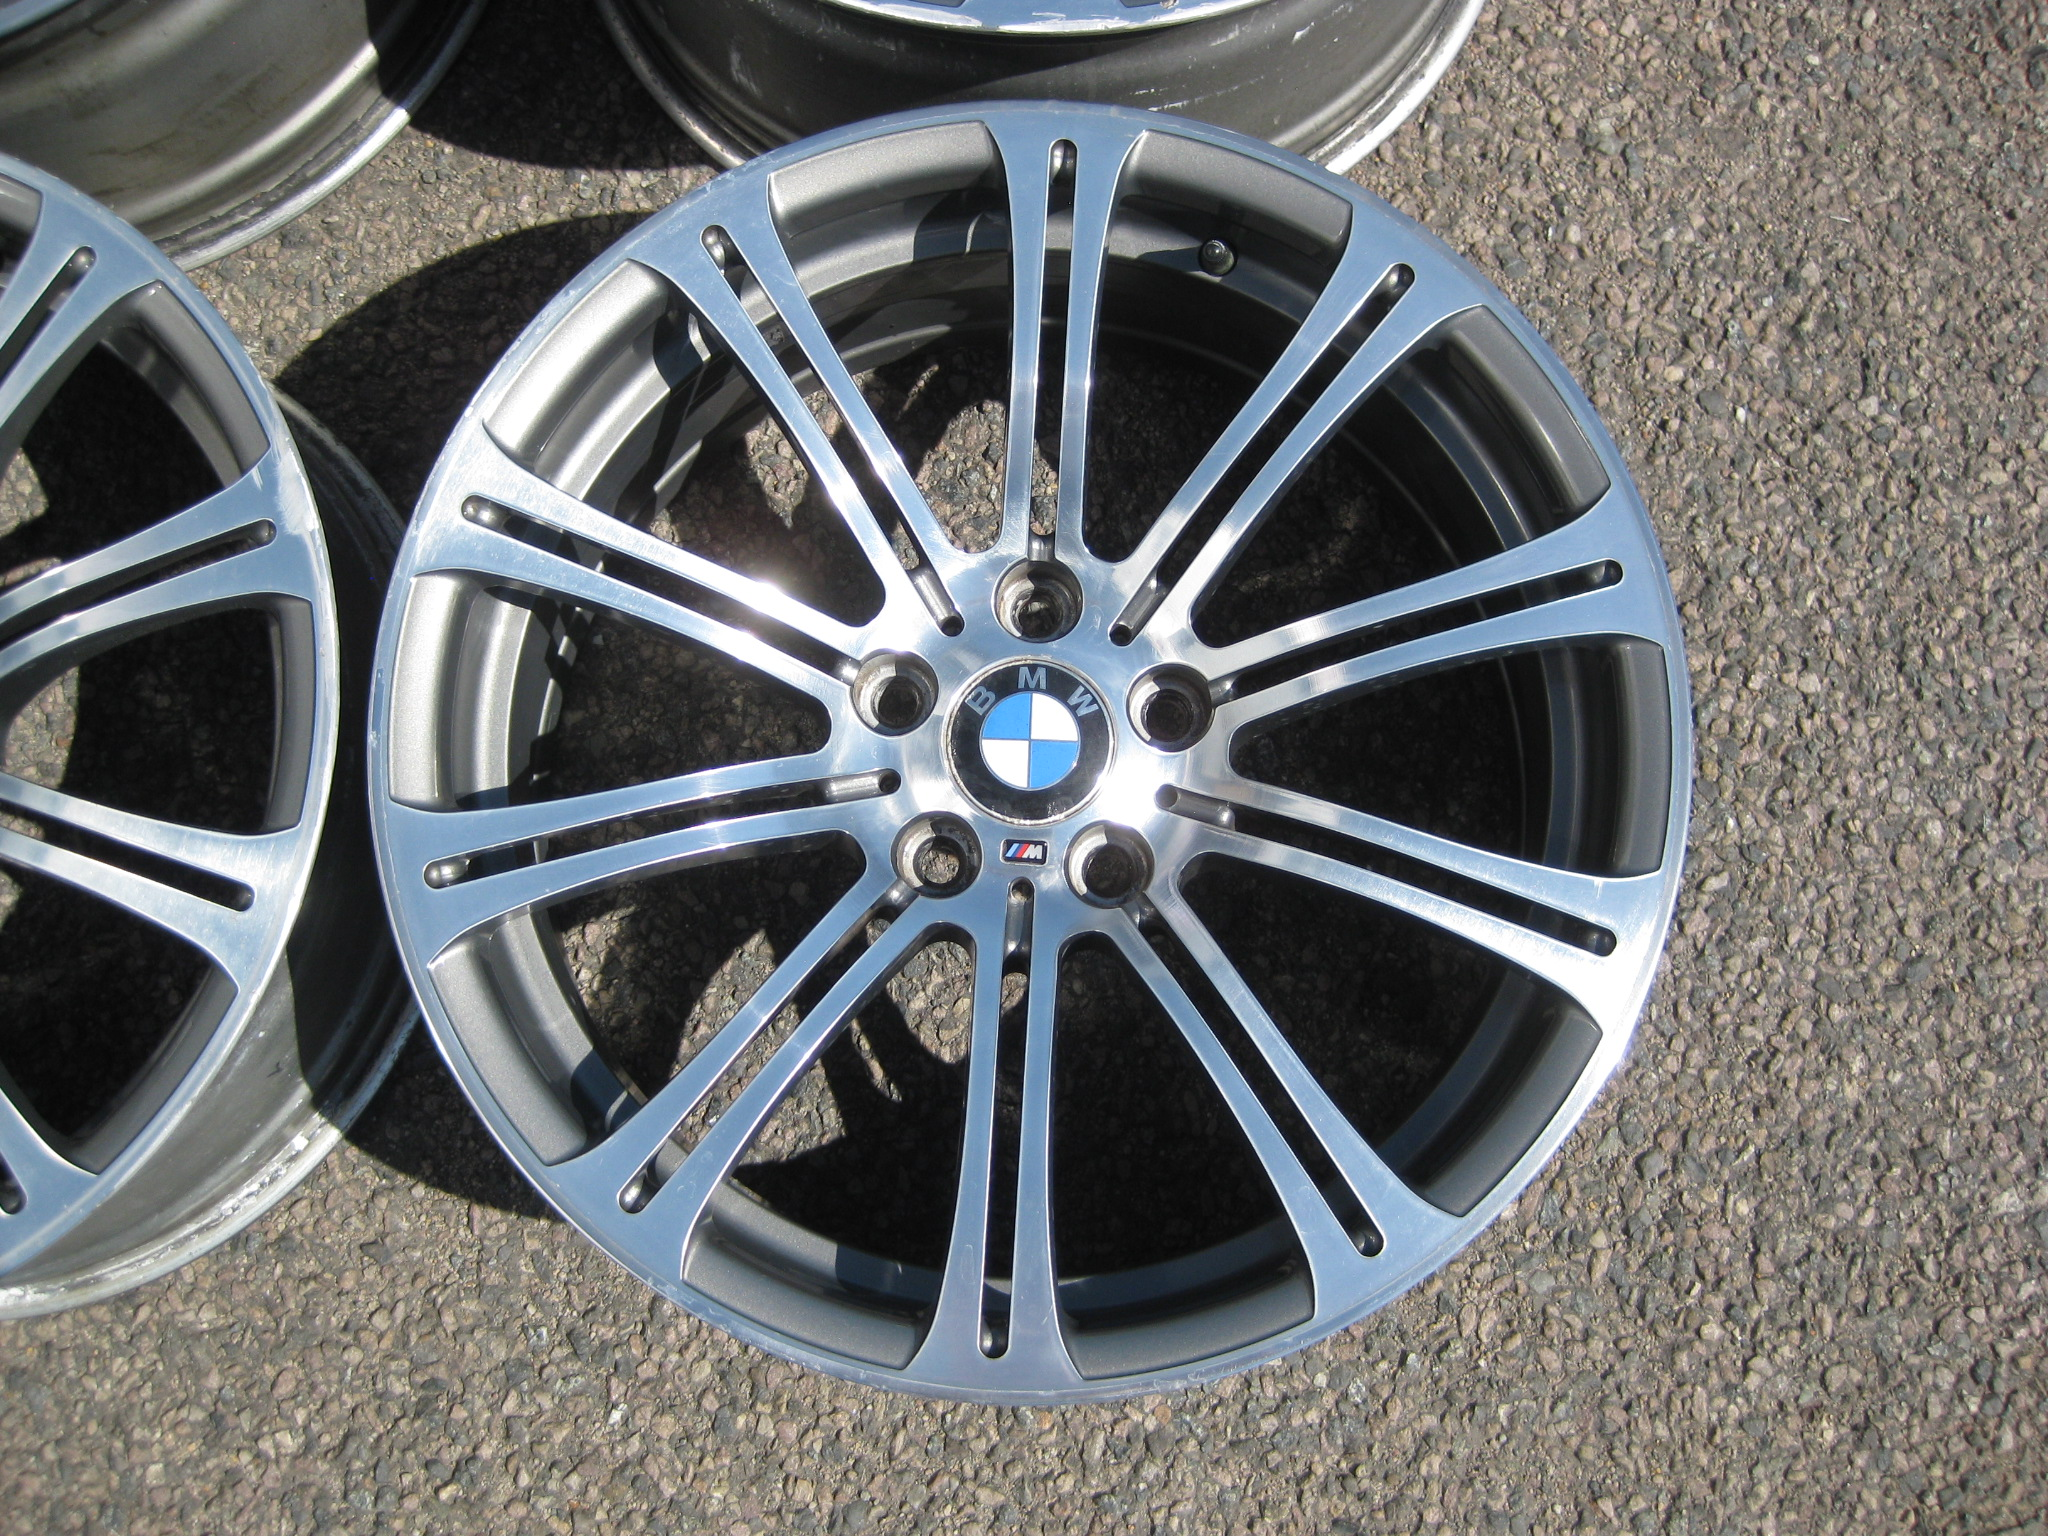 "USED 19"" GENUINE STYLE 220 E92 M3 POLISHED FORGED ALLOYS,WIDE REAR,GOOD ORIGINAL CONDITION"